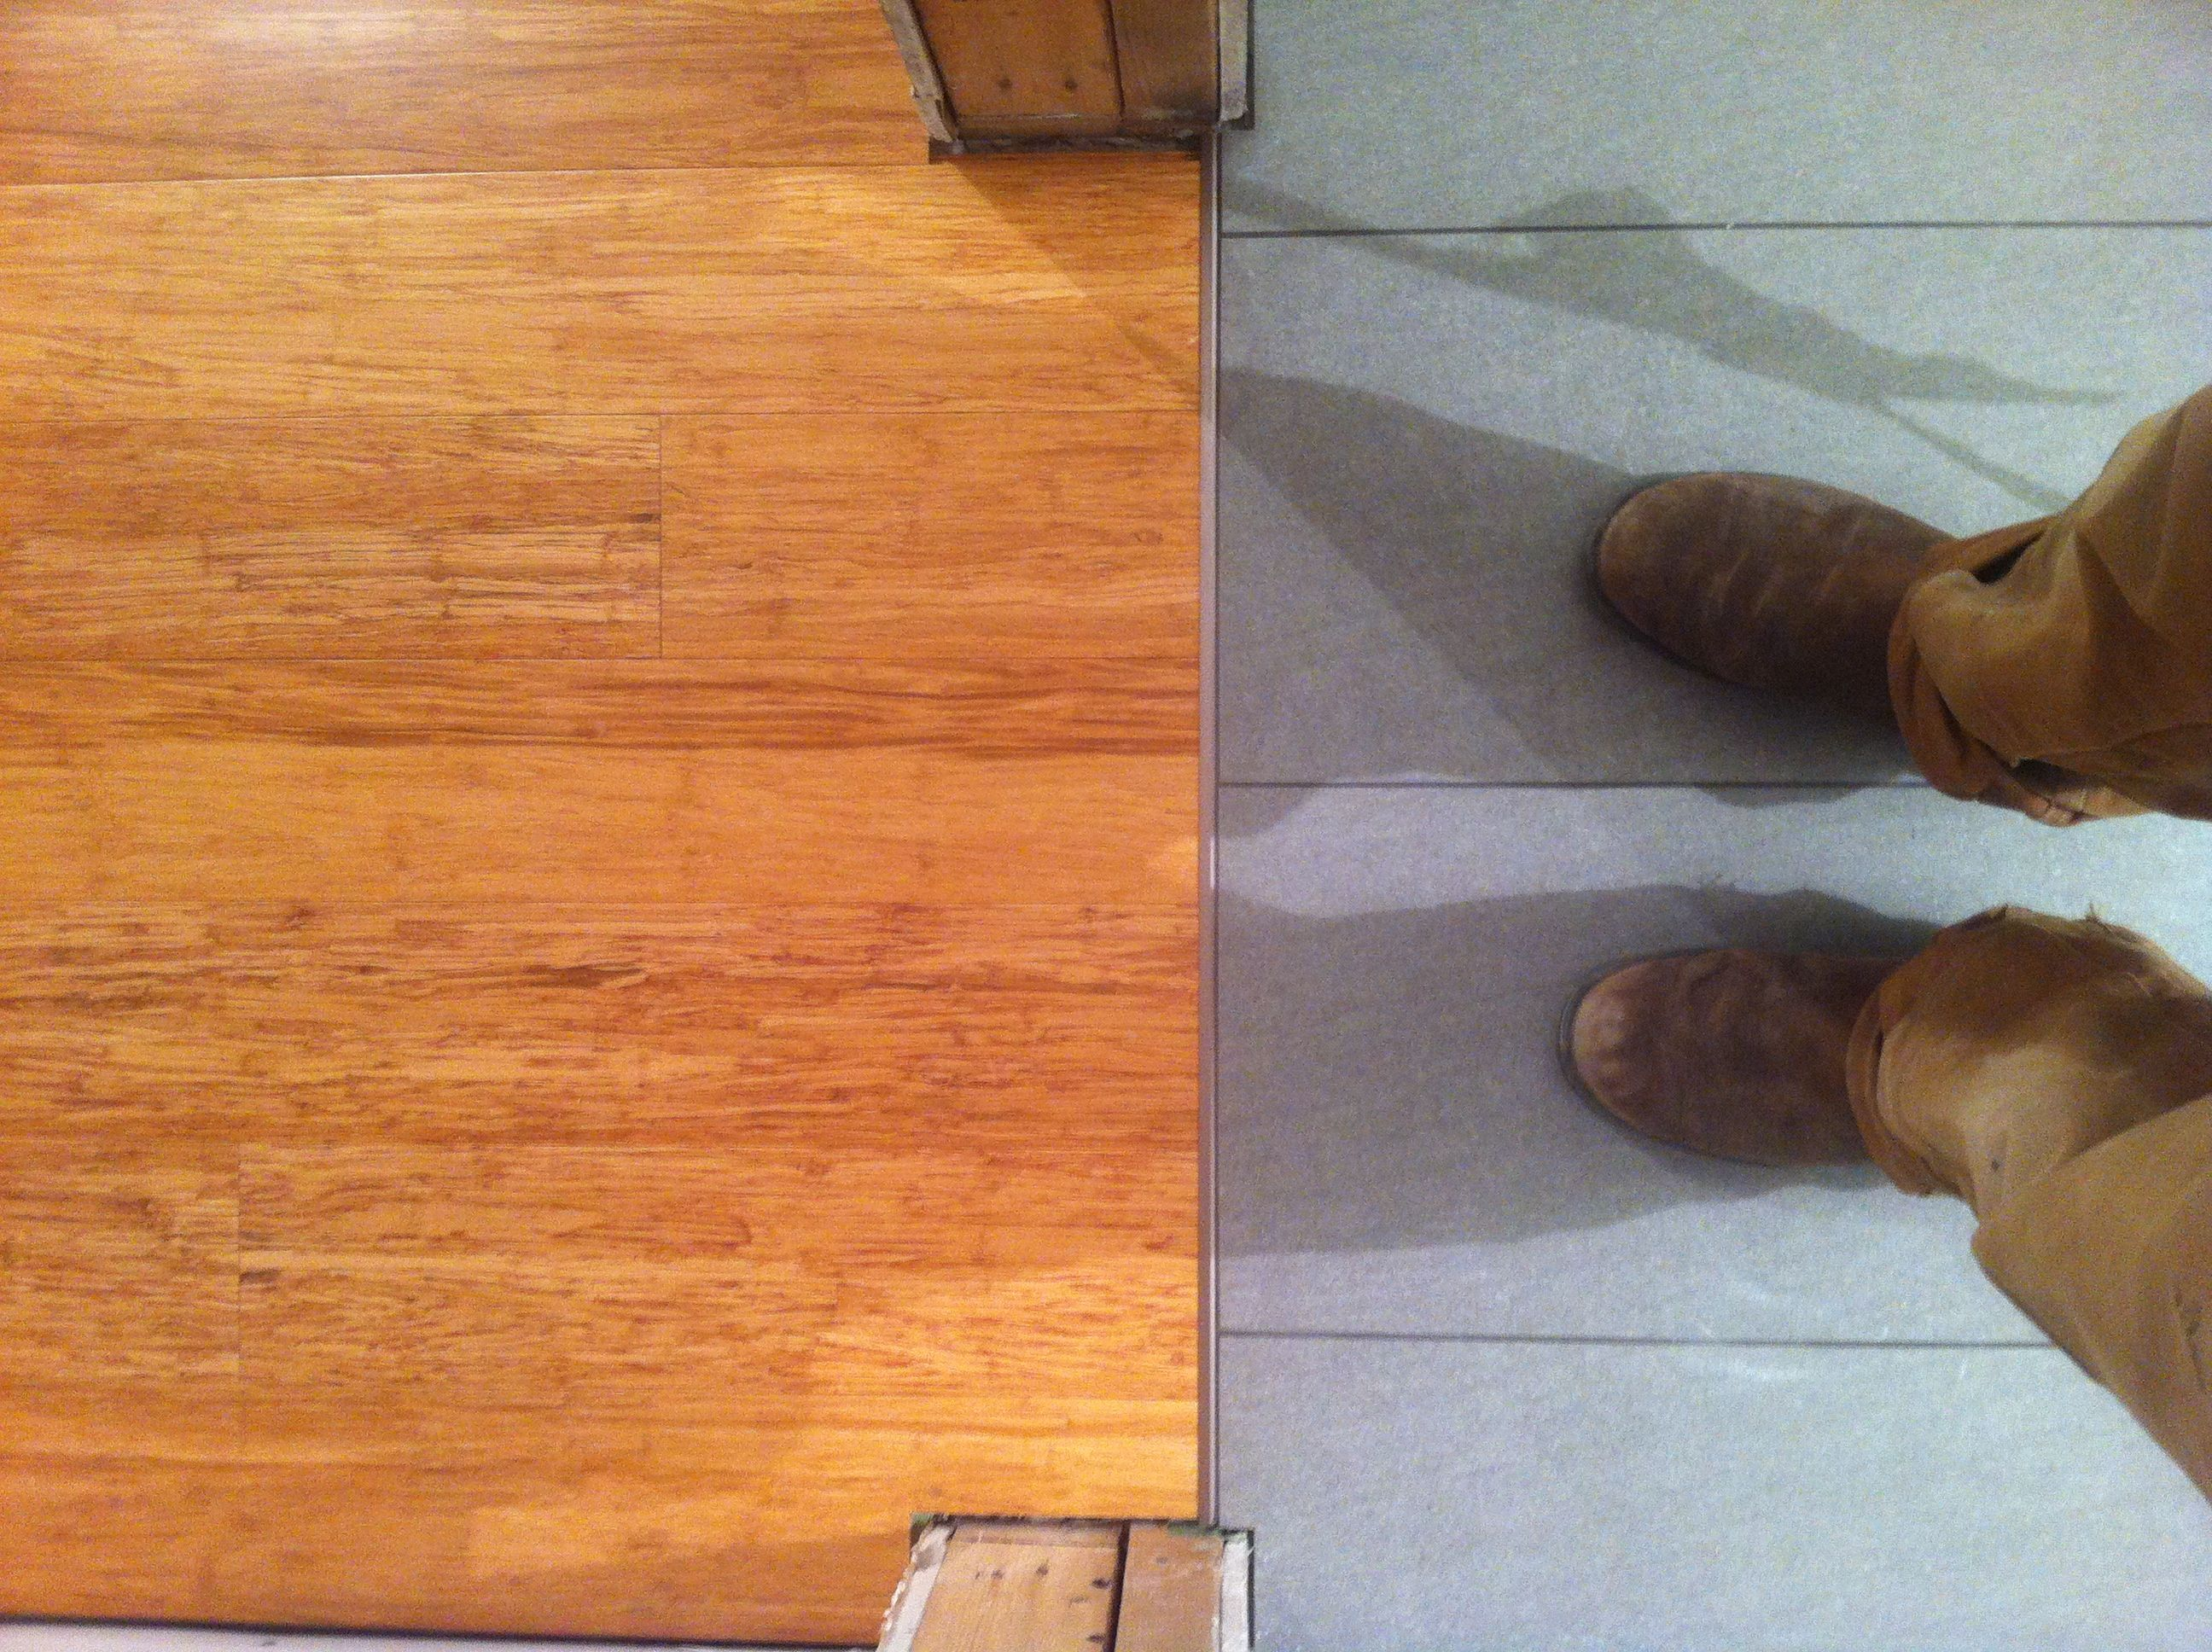 Transition From Bathroom Tiles To Bamboo Floor Floors Pinterest